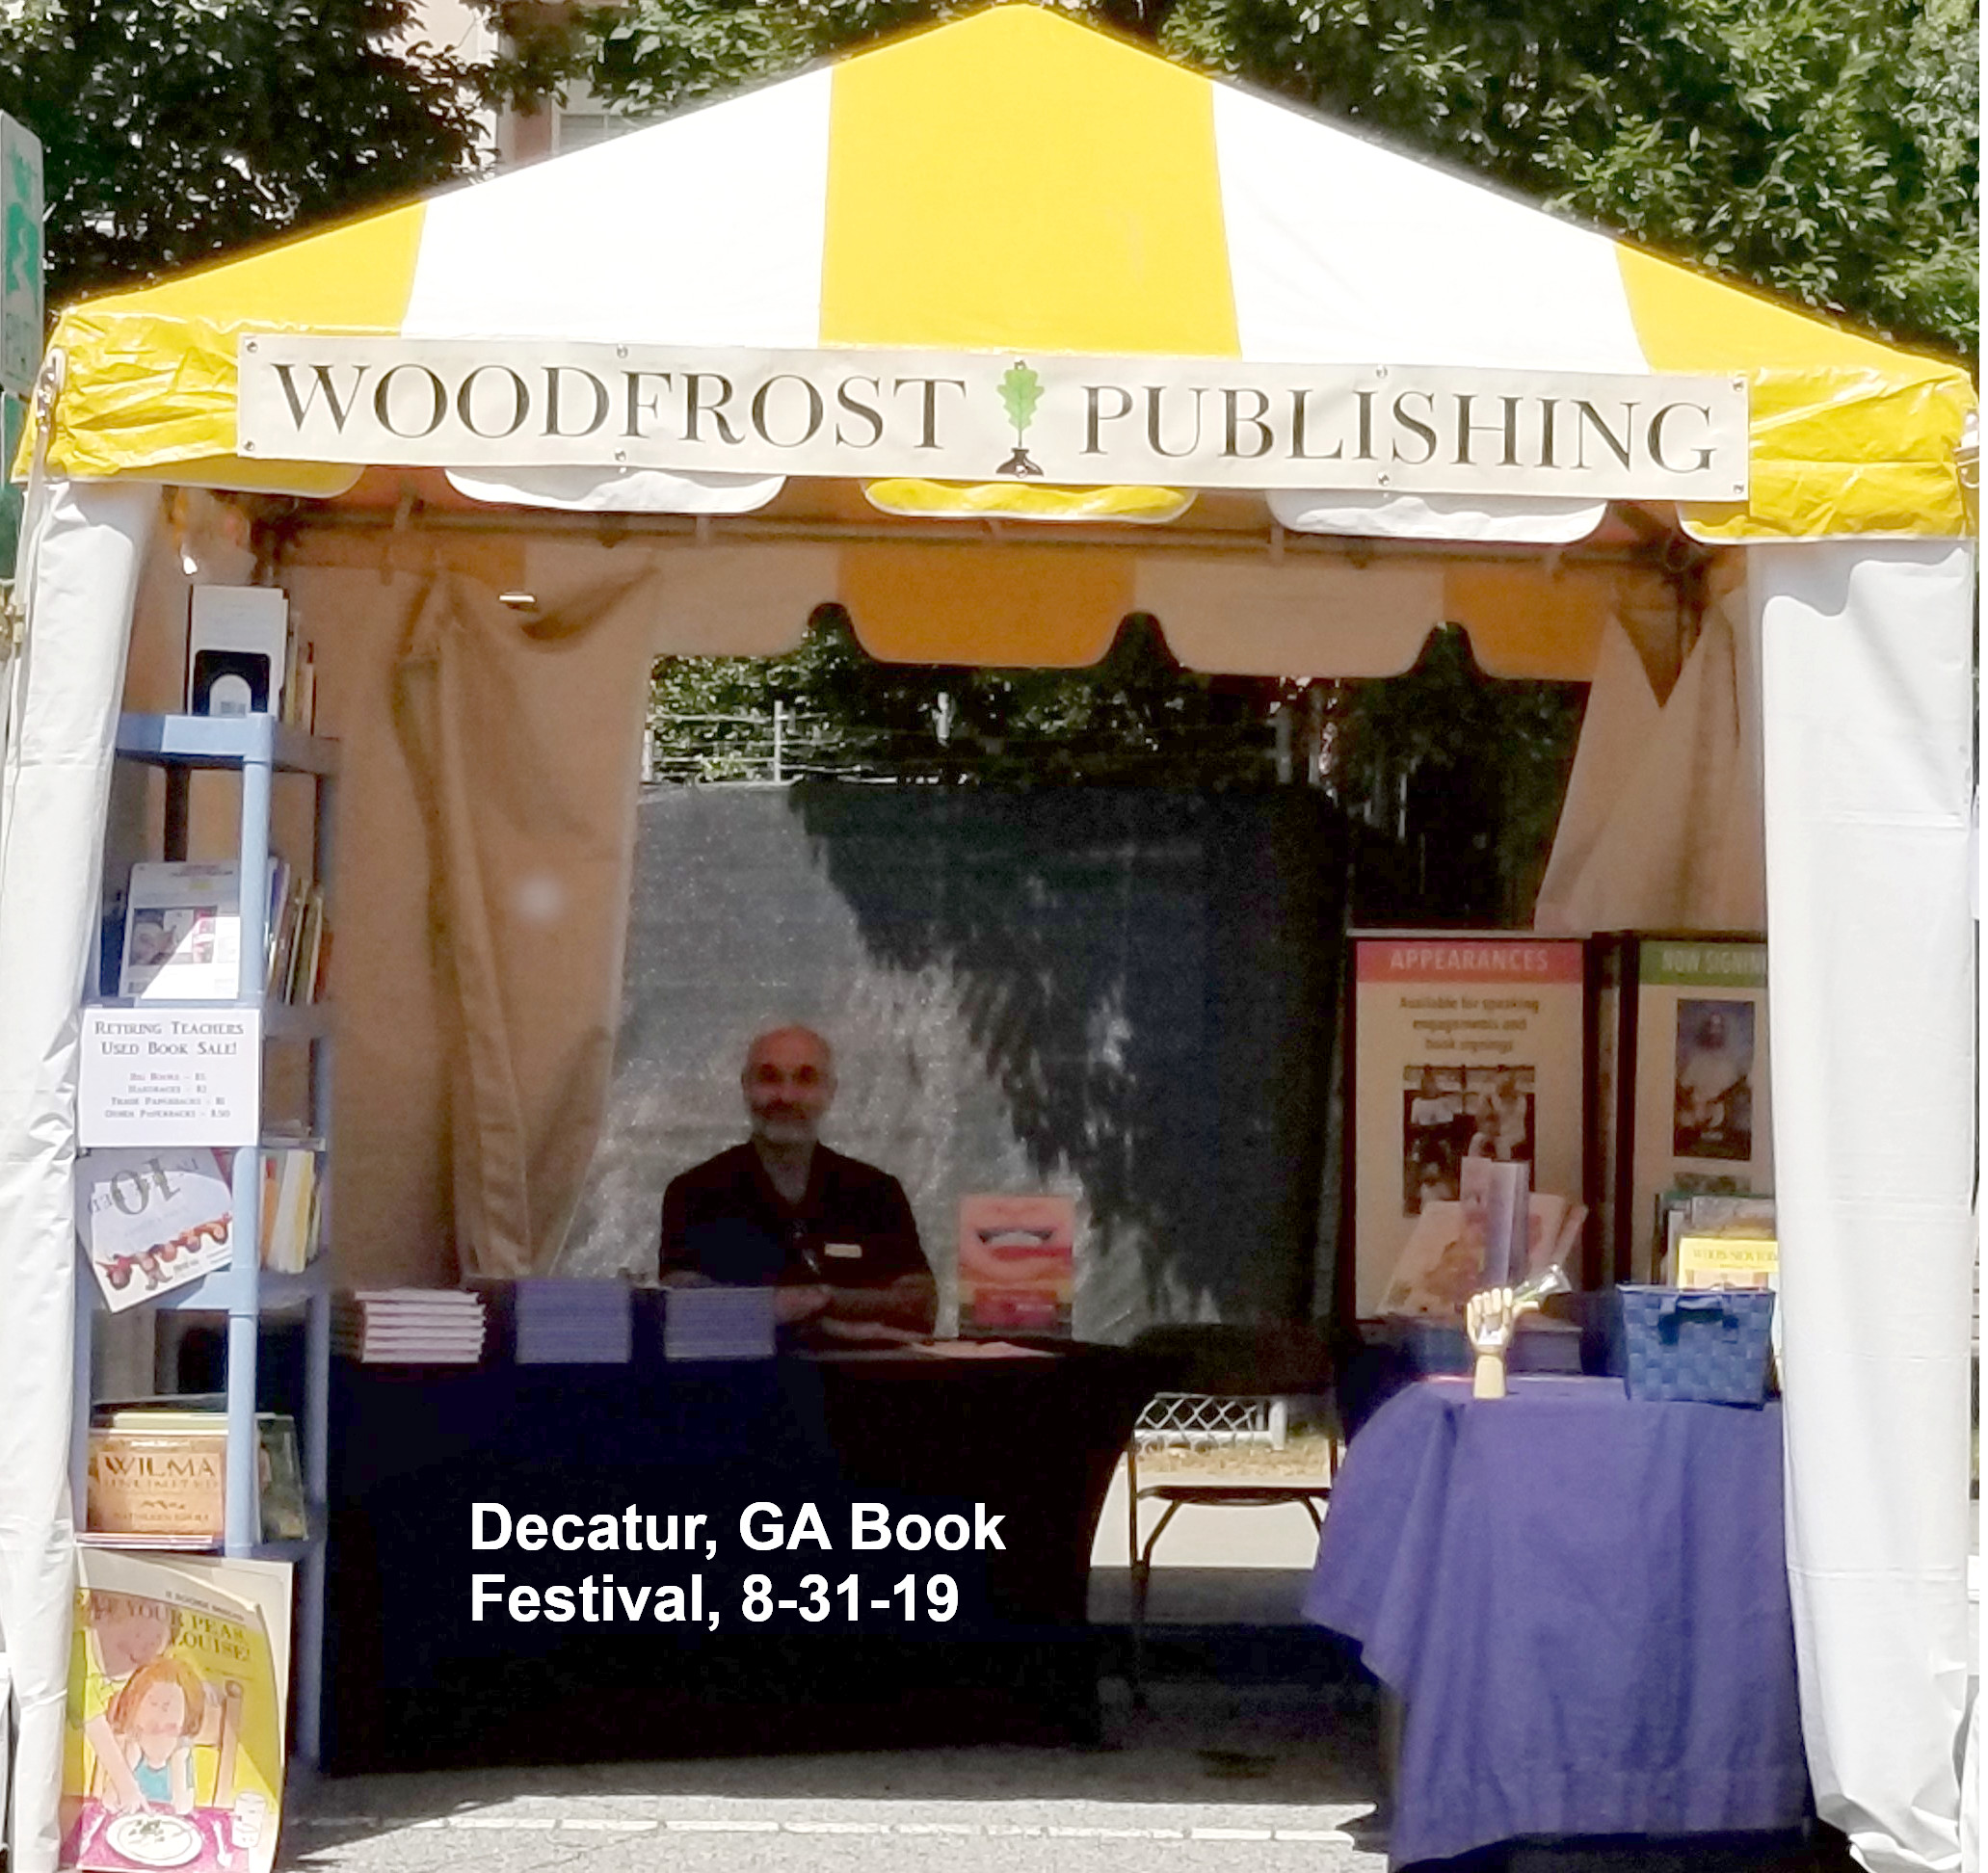 Decatur GA Book Festival 8-31-19.jpg